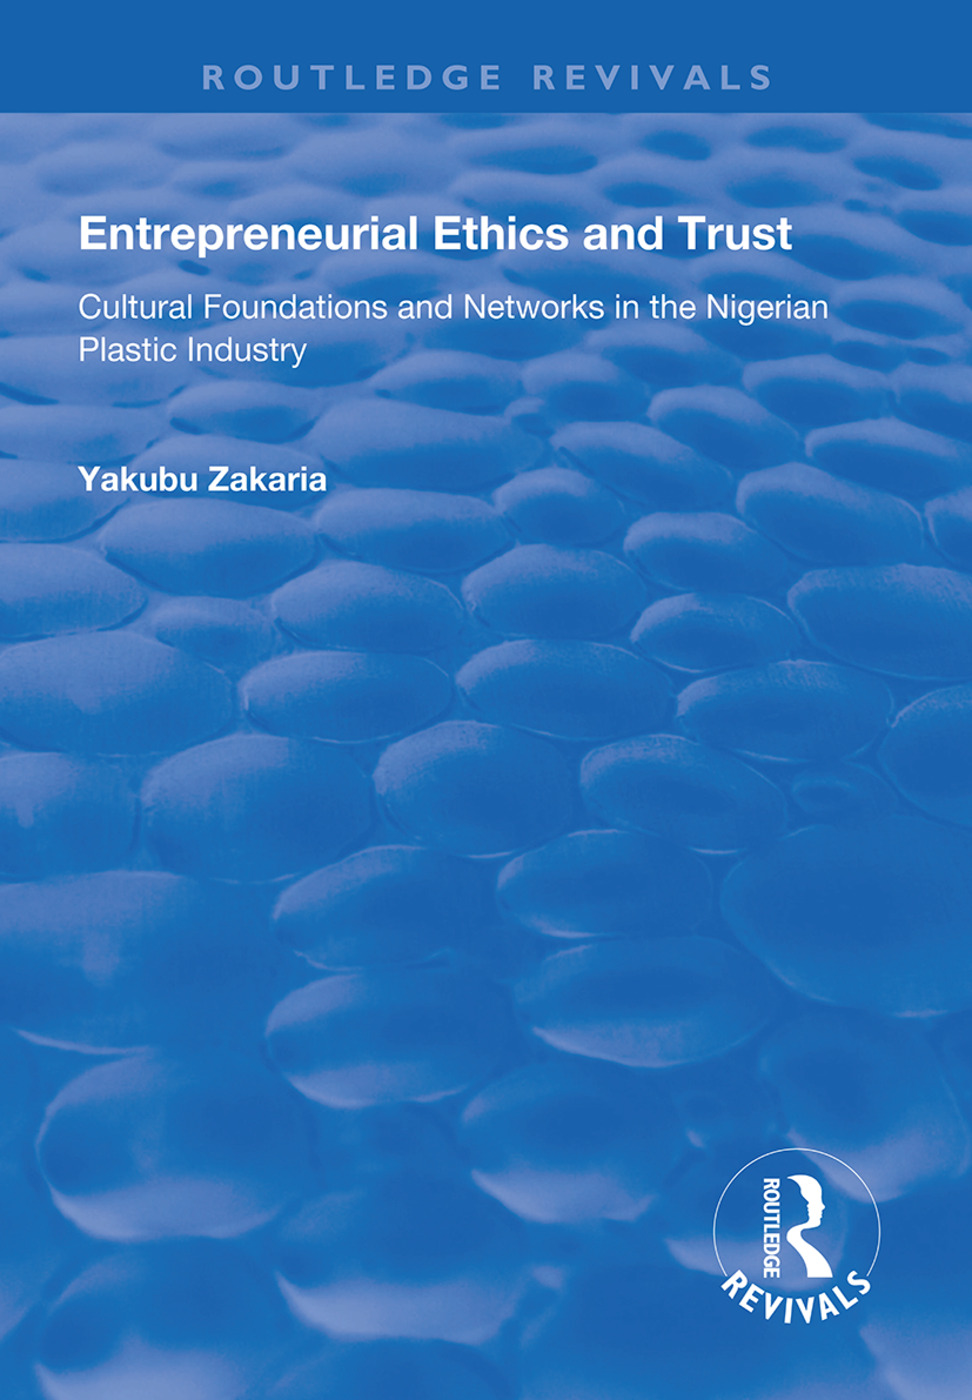 Entrepreneurial Ethics and Trust: Cultural Foundations and Networks in the Nigerian Plastic Industry book cover